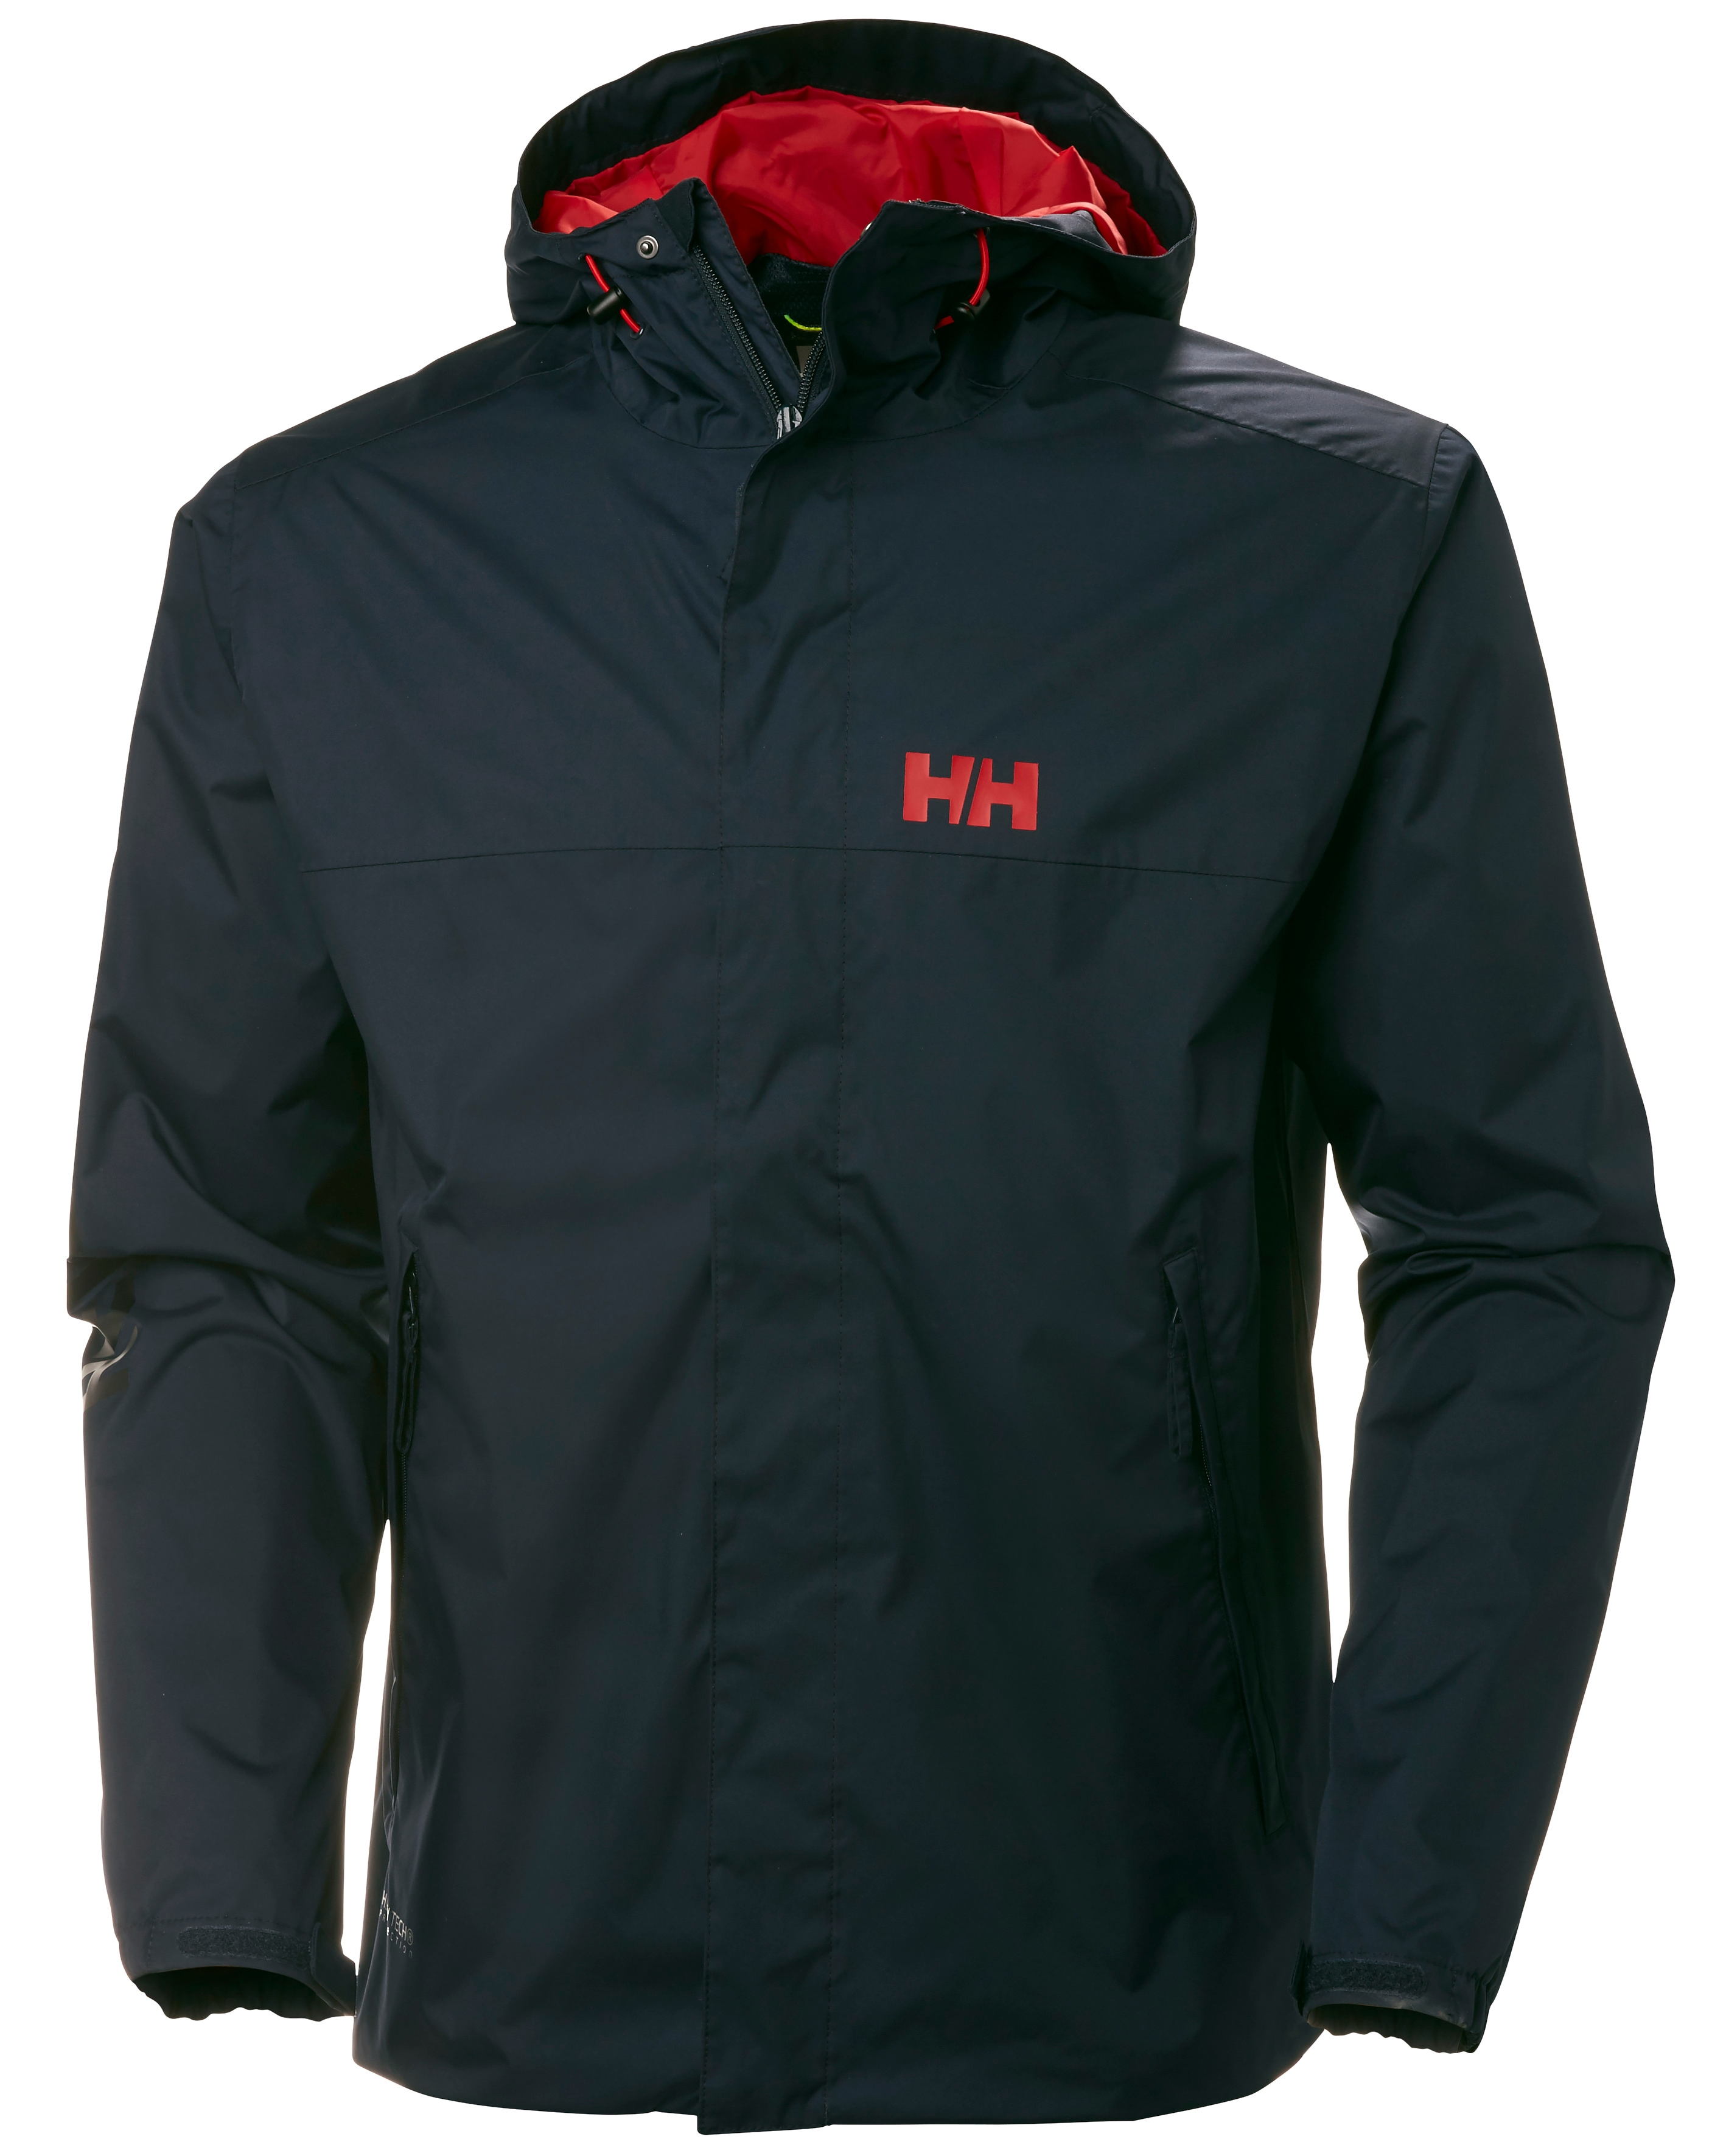 Helly Hansen Outdoorjacke Outdoorjacke | Sportbekleidung > Sportjacken > Outdoorjacken | Schwarz | Polyurethan | Helly Hansen